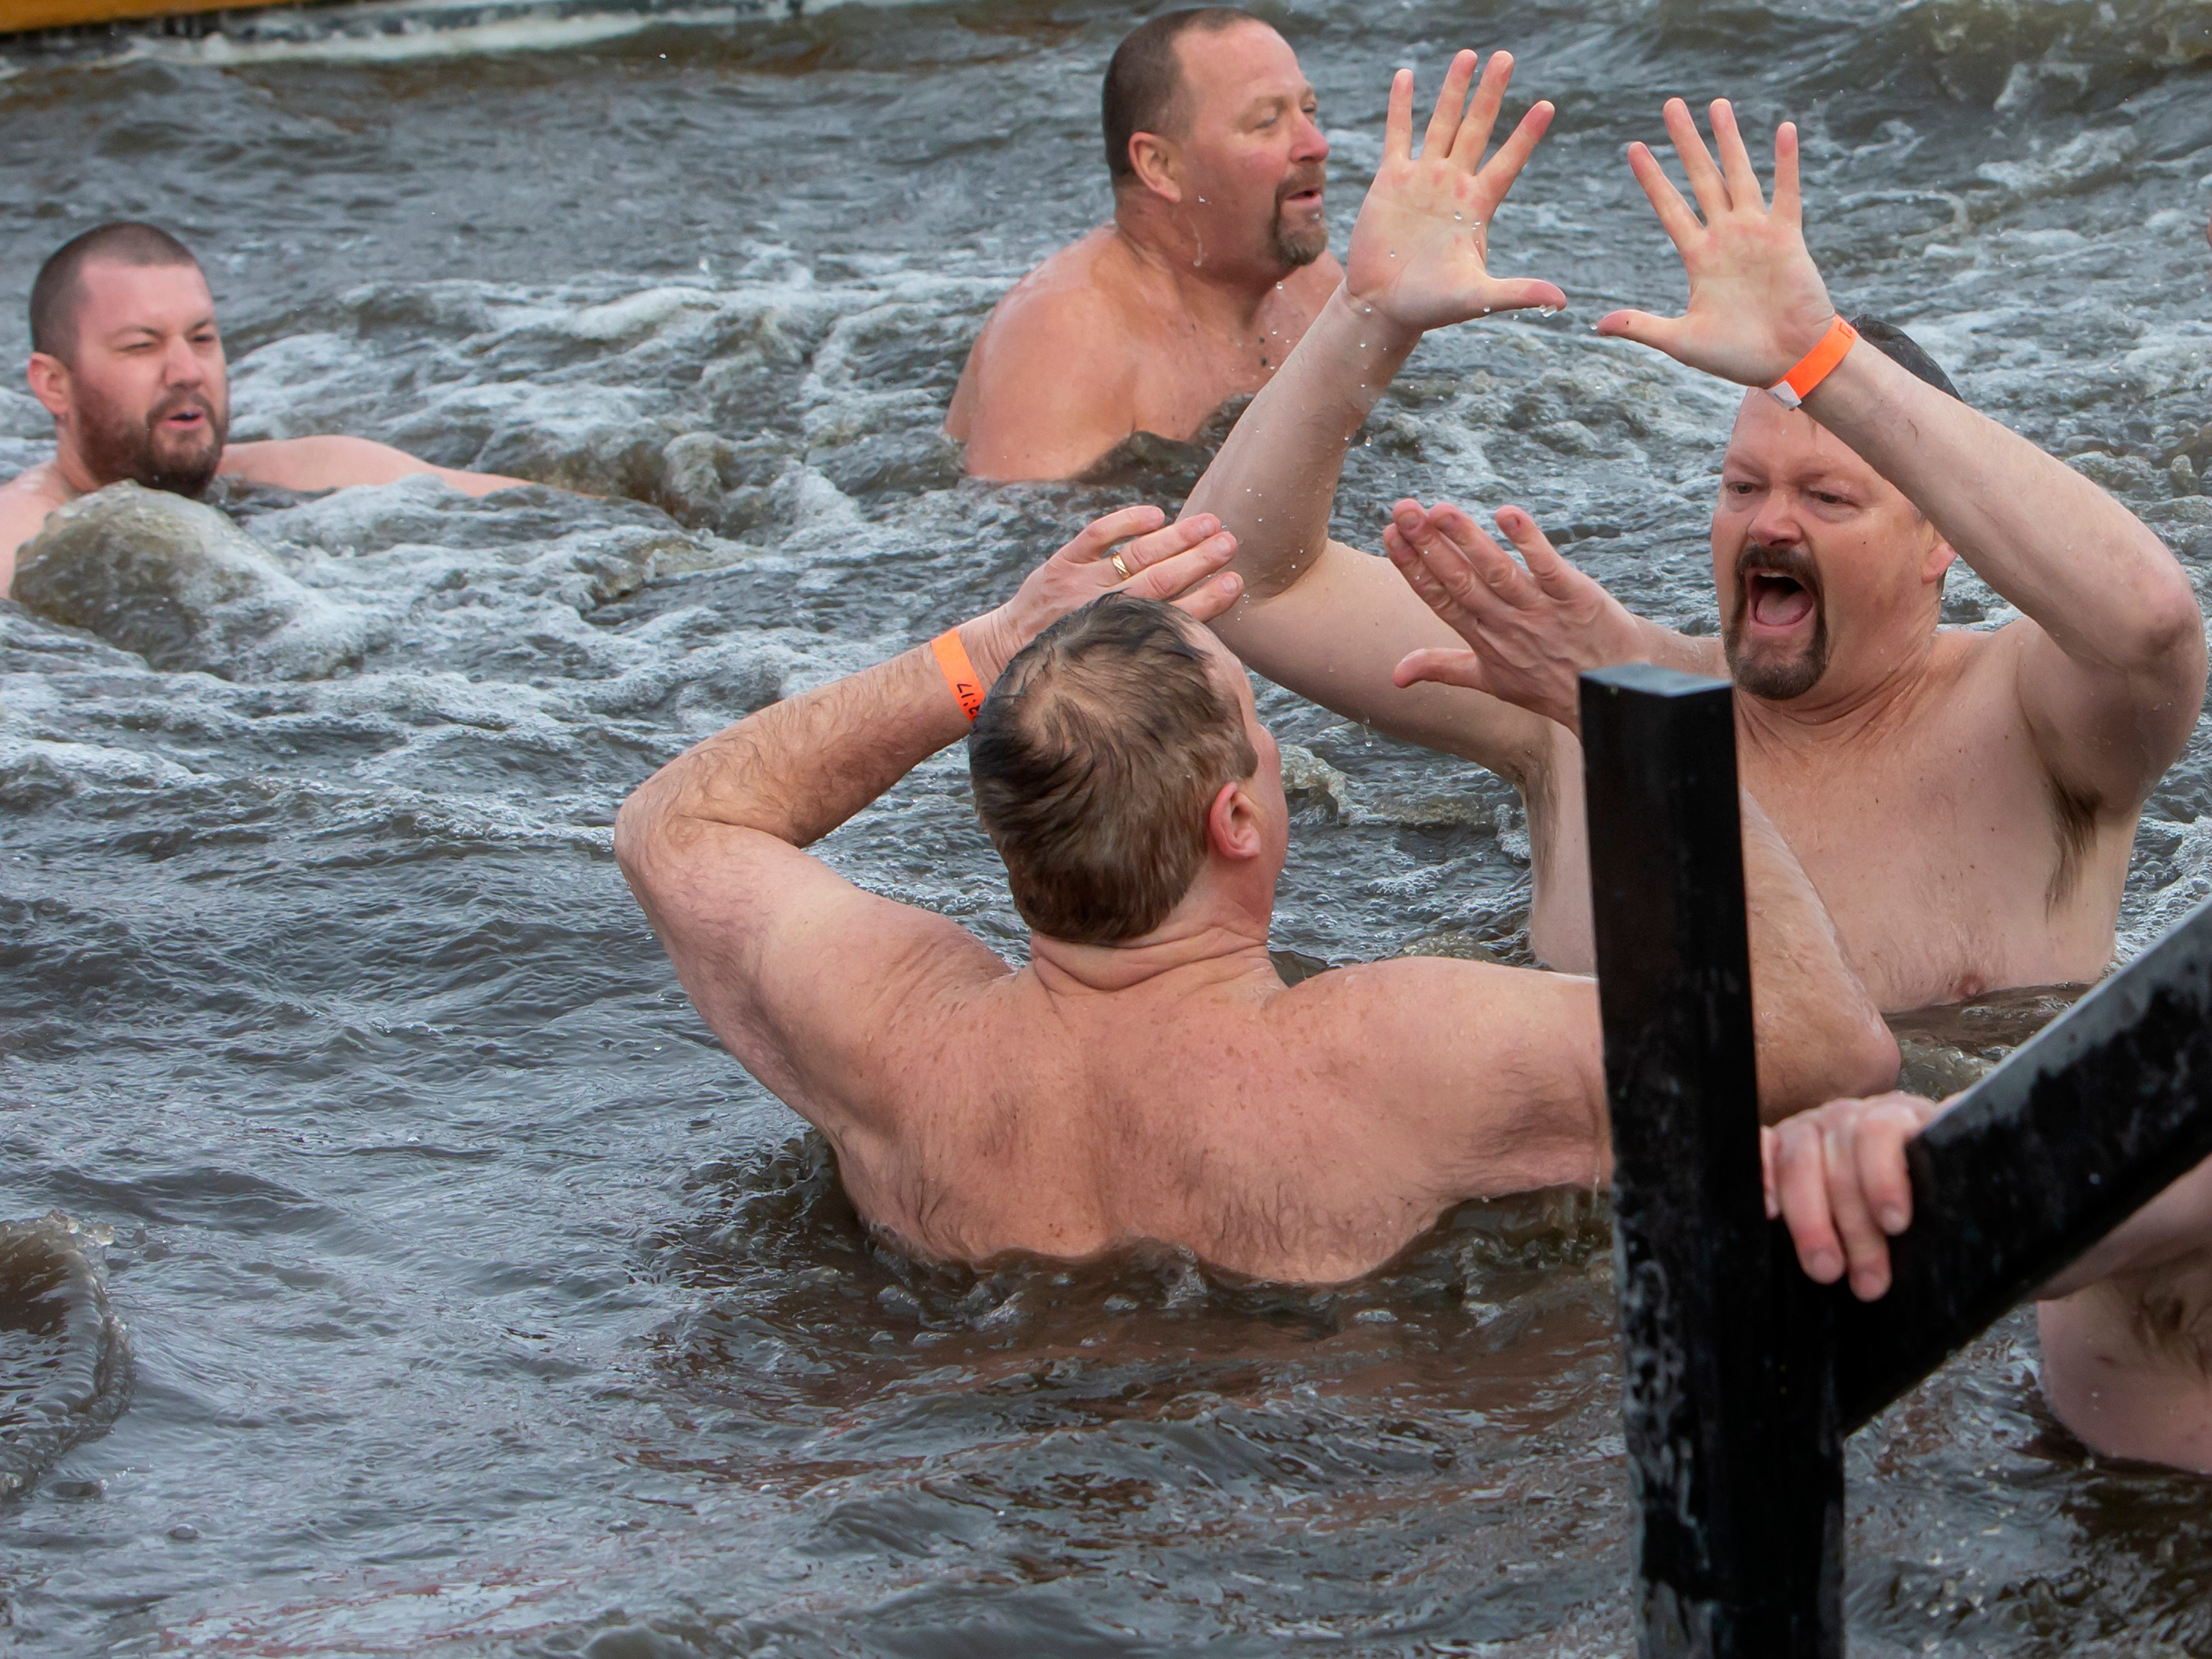 People react while in the cold water during the Special Olympics Wisconsin Polar Plunge in Oshkosh, Wis., on Saturday, February 16, 2019, at Miller's Bay in Menominee Park.